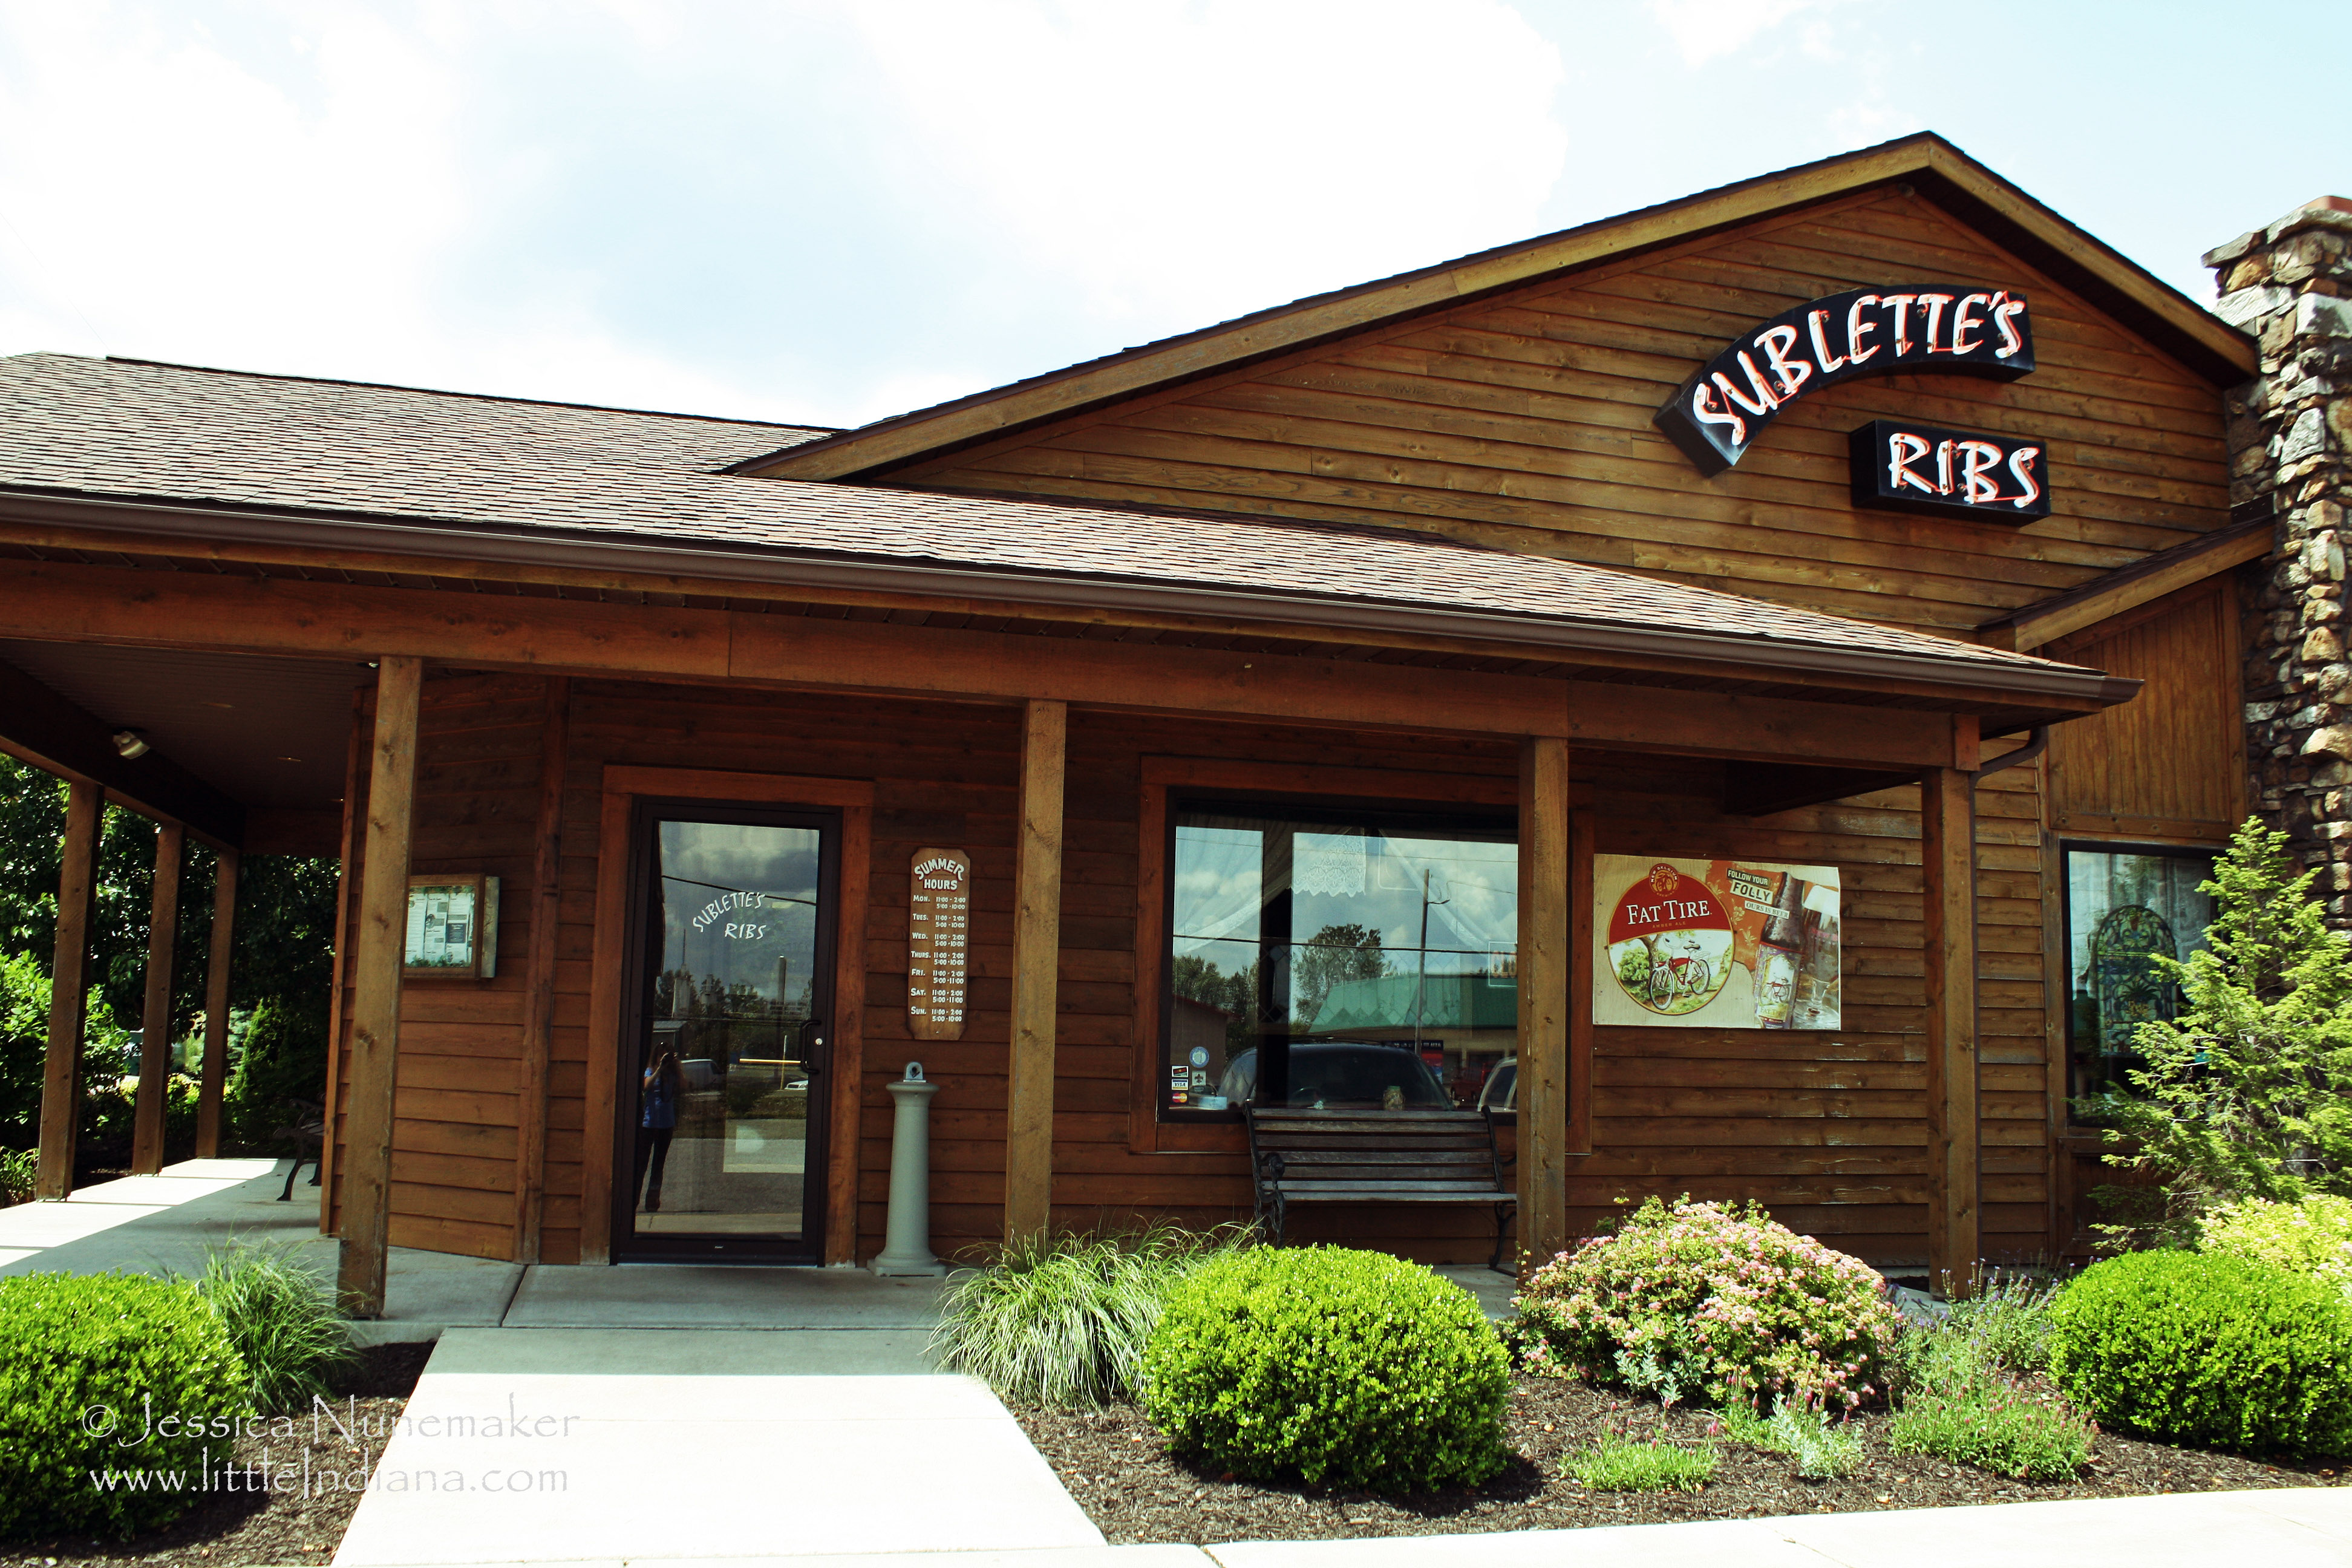 Sublette's Ribs: Monticello, Indiana Exterior